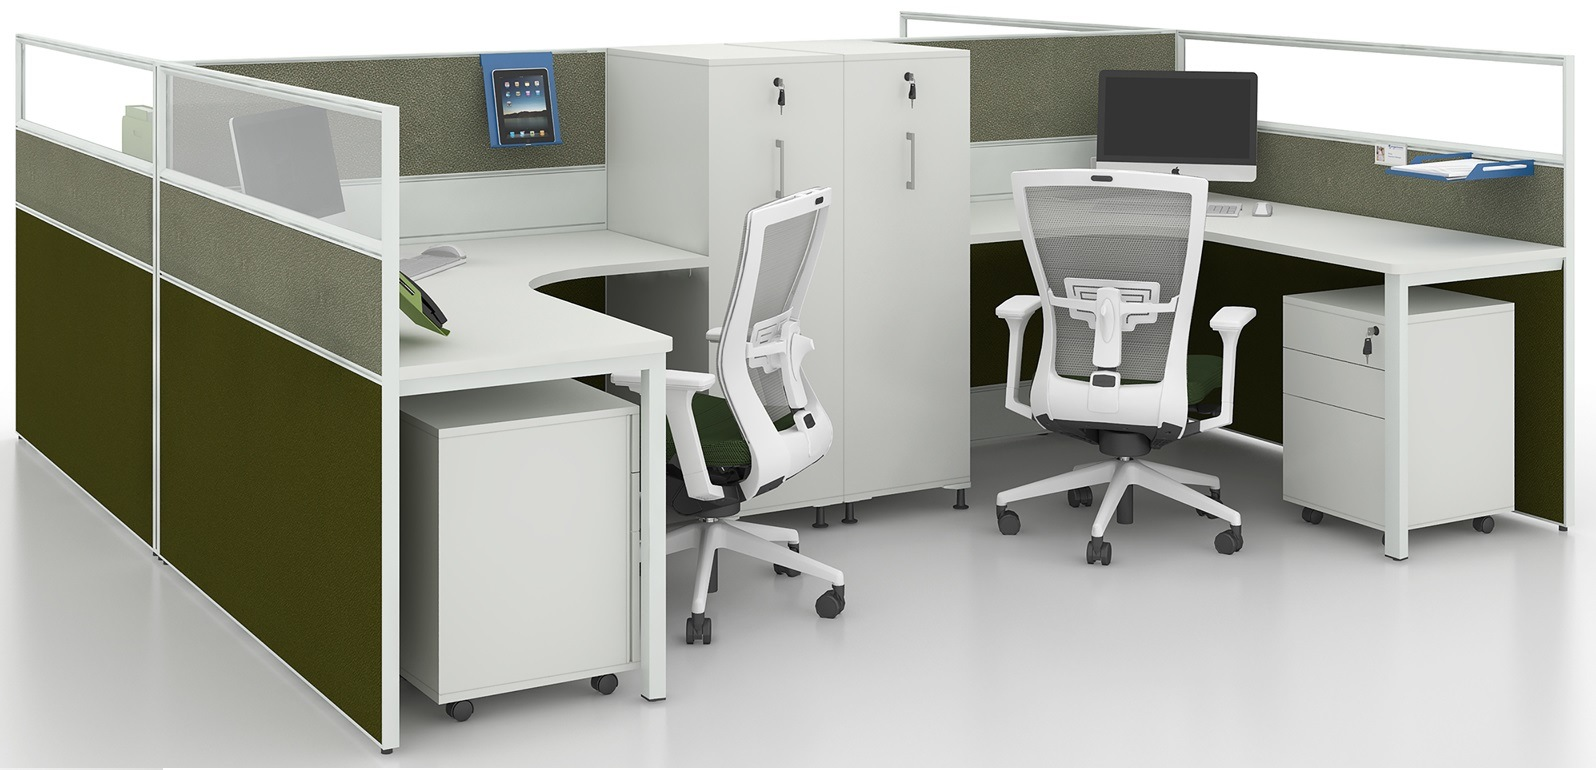 Hot Item Commercial Furniture Modern Workstation Desk Modular Office Furniture